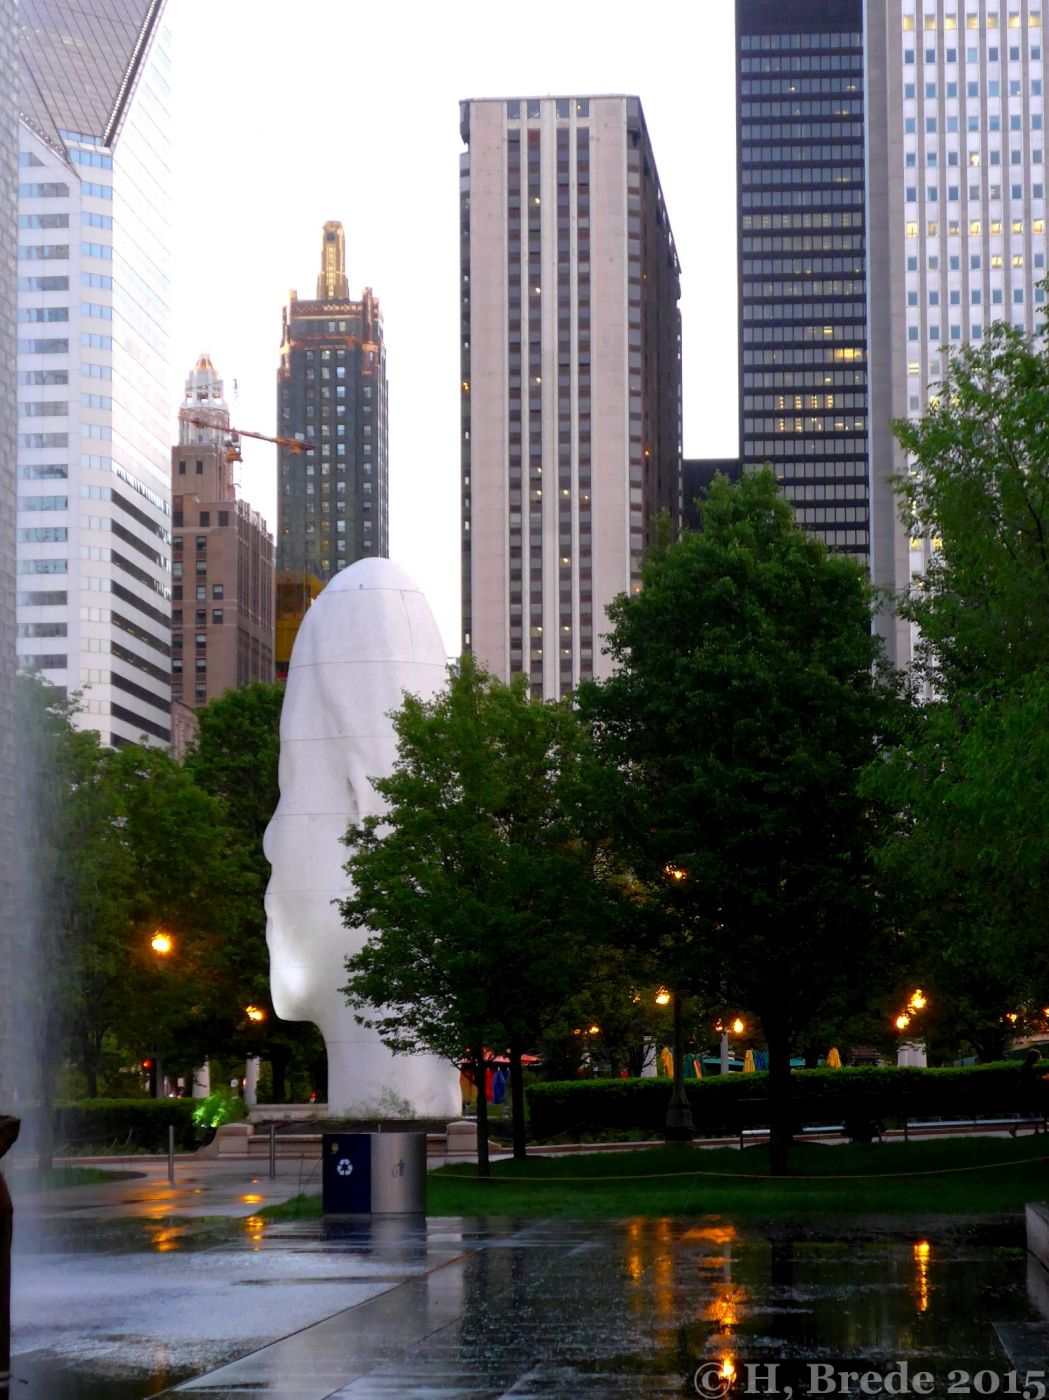 Skulptures in the Millenium Park, USA